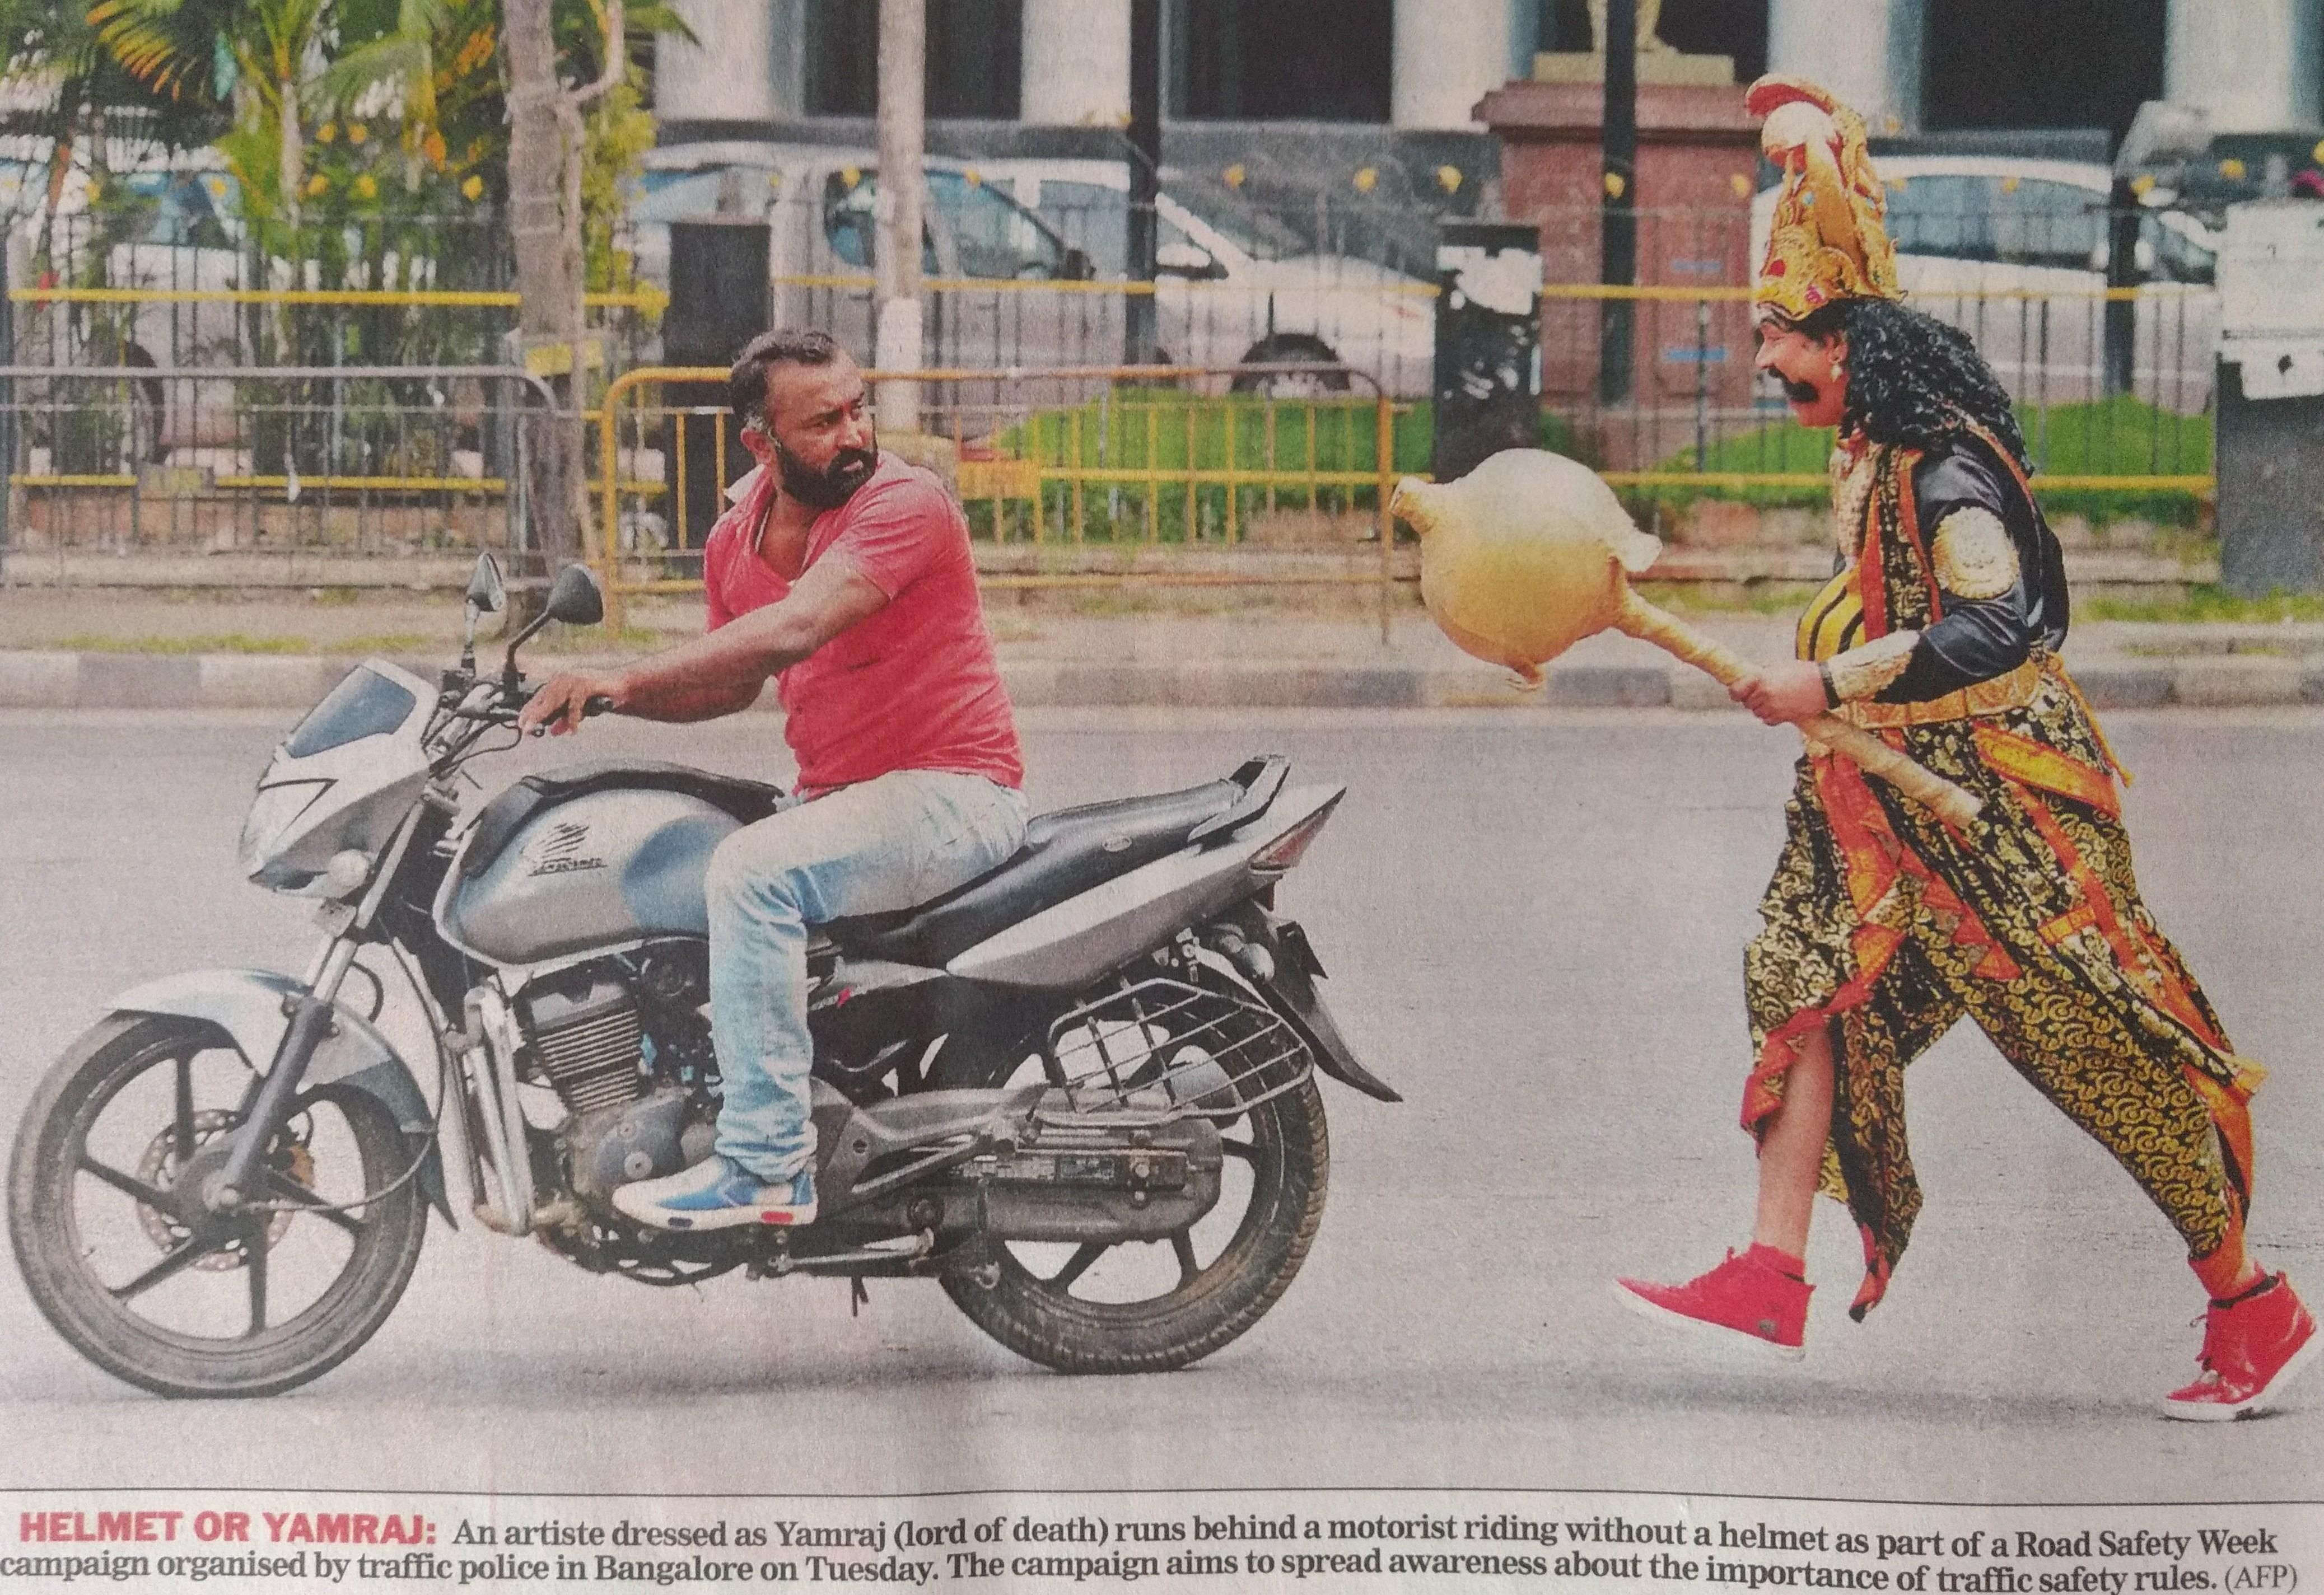 So Indian Police had a guy dress up as God of Death to chase people not wearing helmets